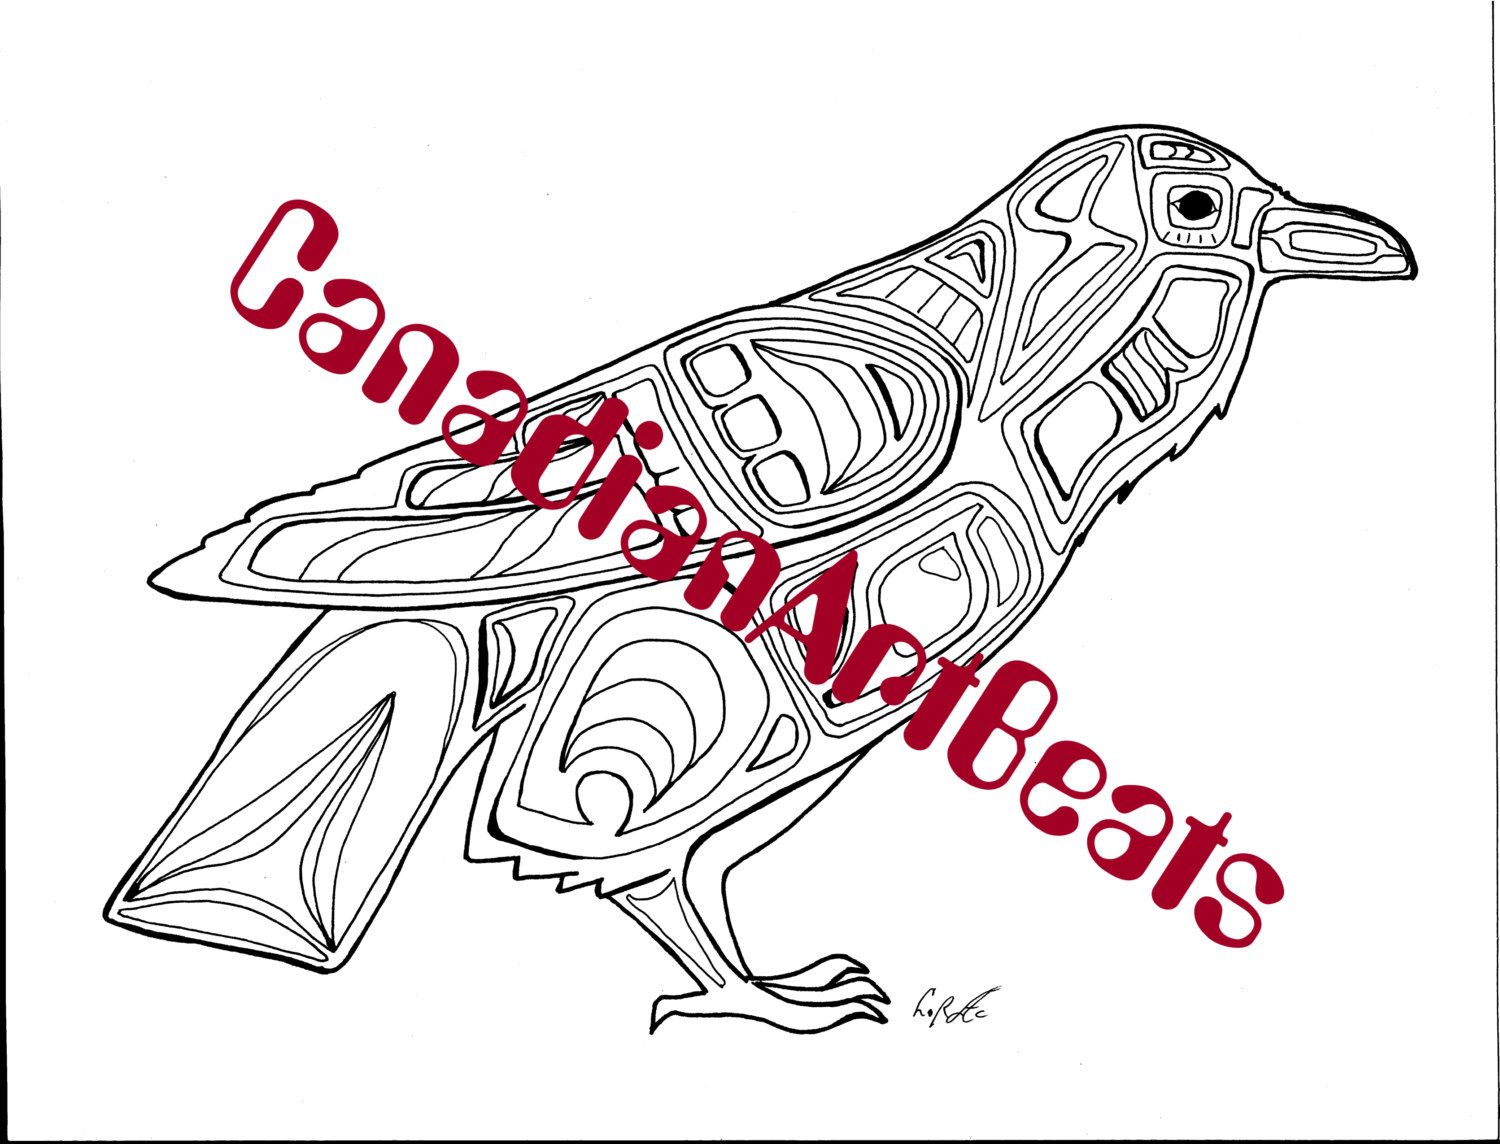 raven bird coloring page downloadable printable art by canadianartbeats on etsy